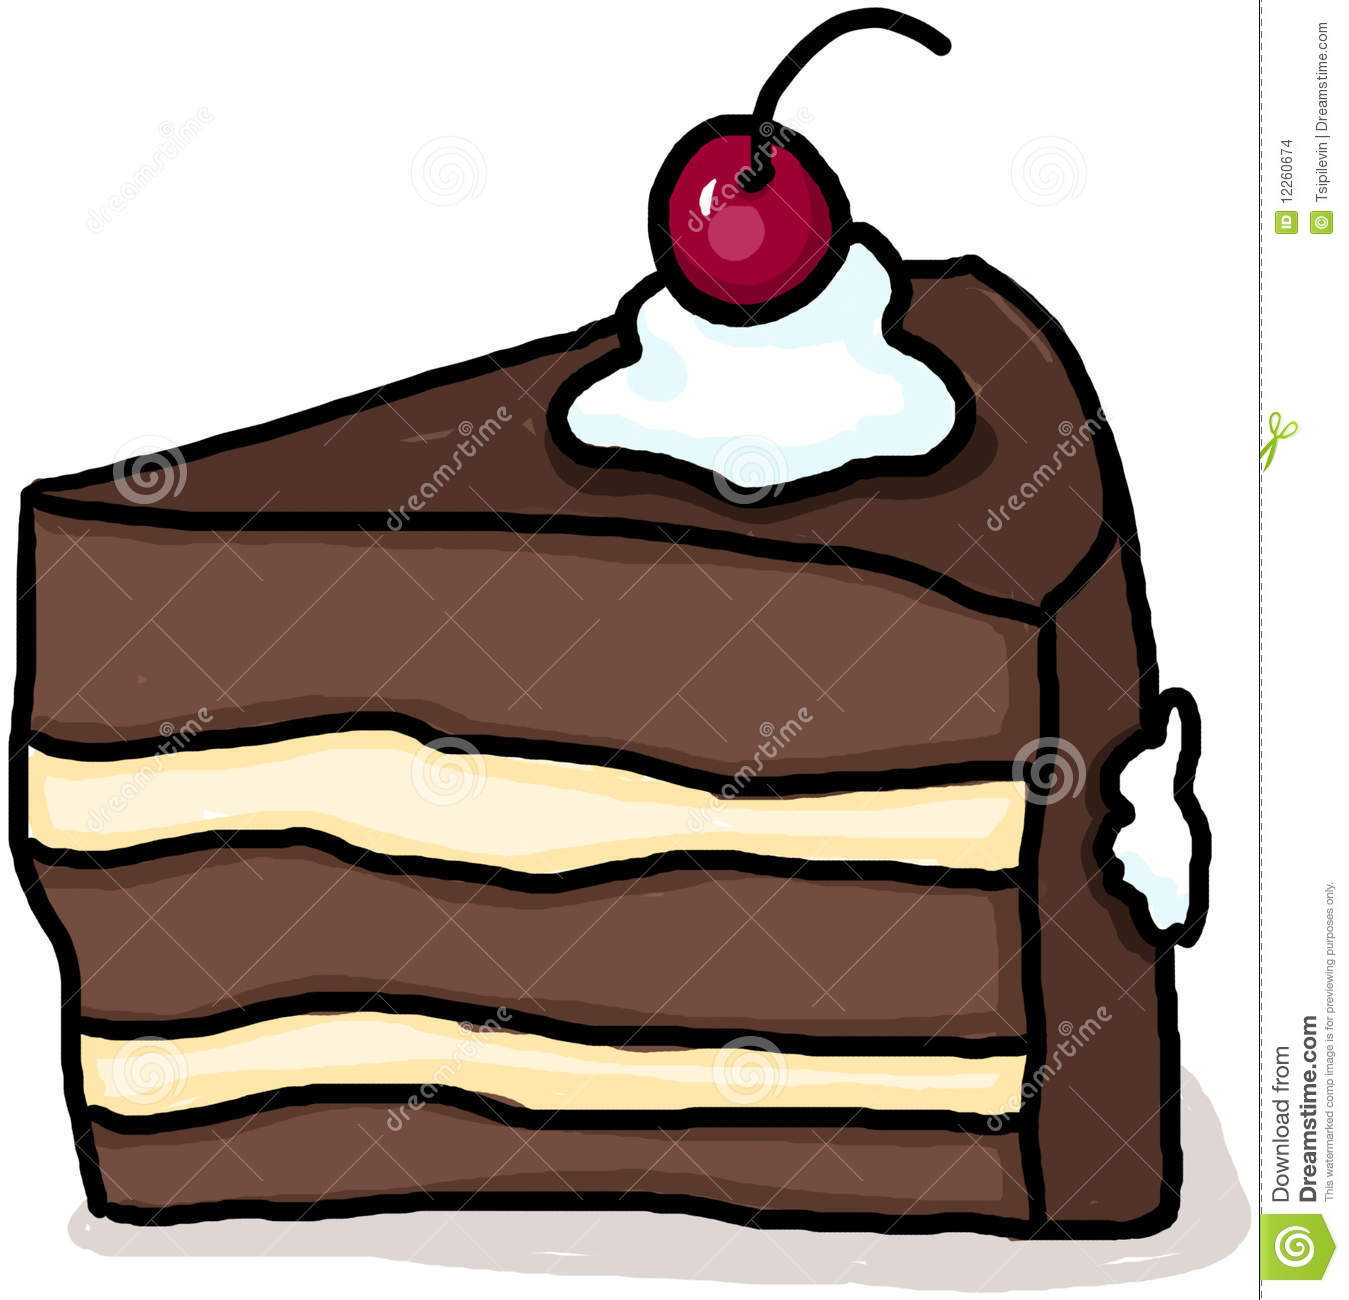 slice of cake clip art clipart panda free clipart images rh clipartpanda com  slice of cake clipart black and white